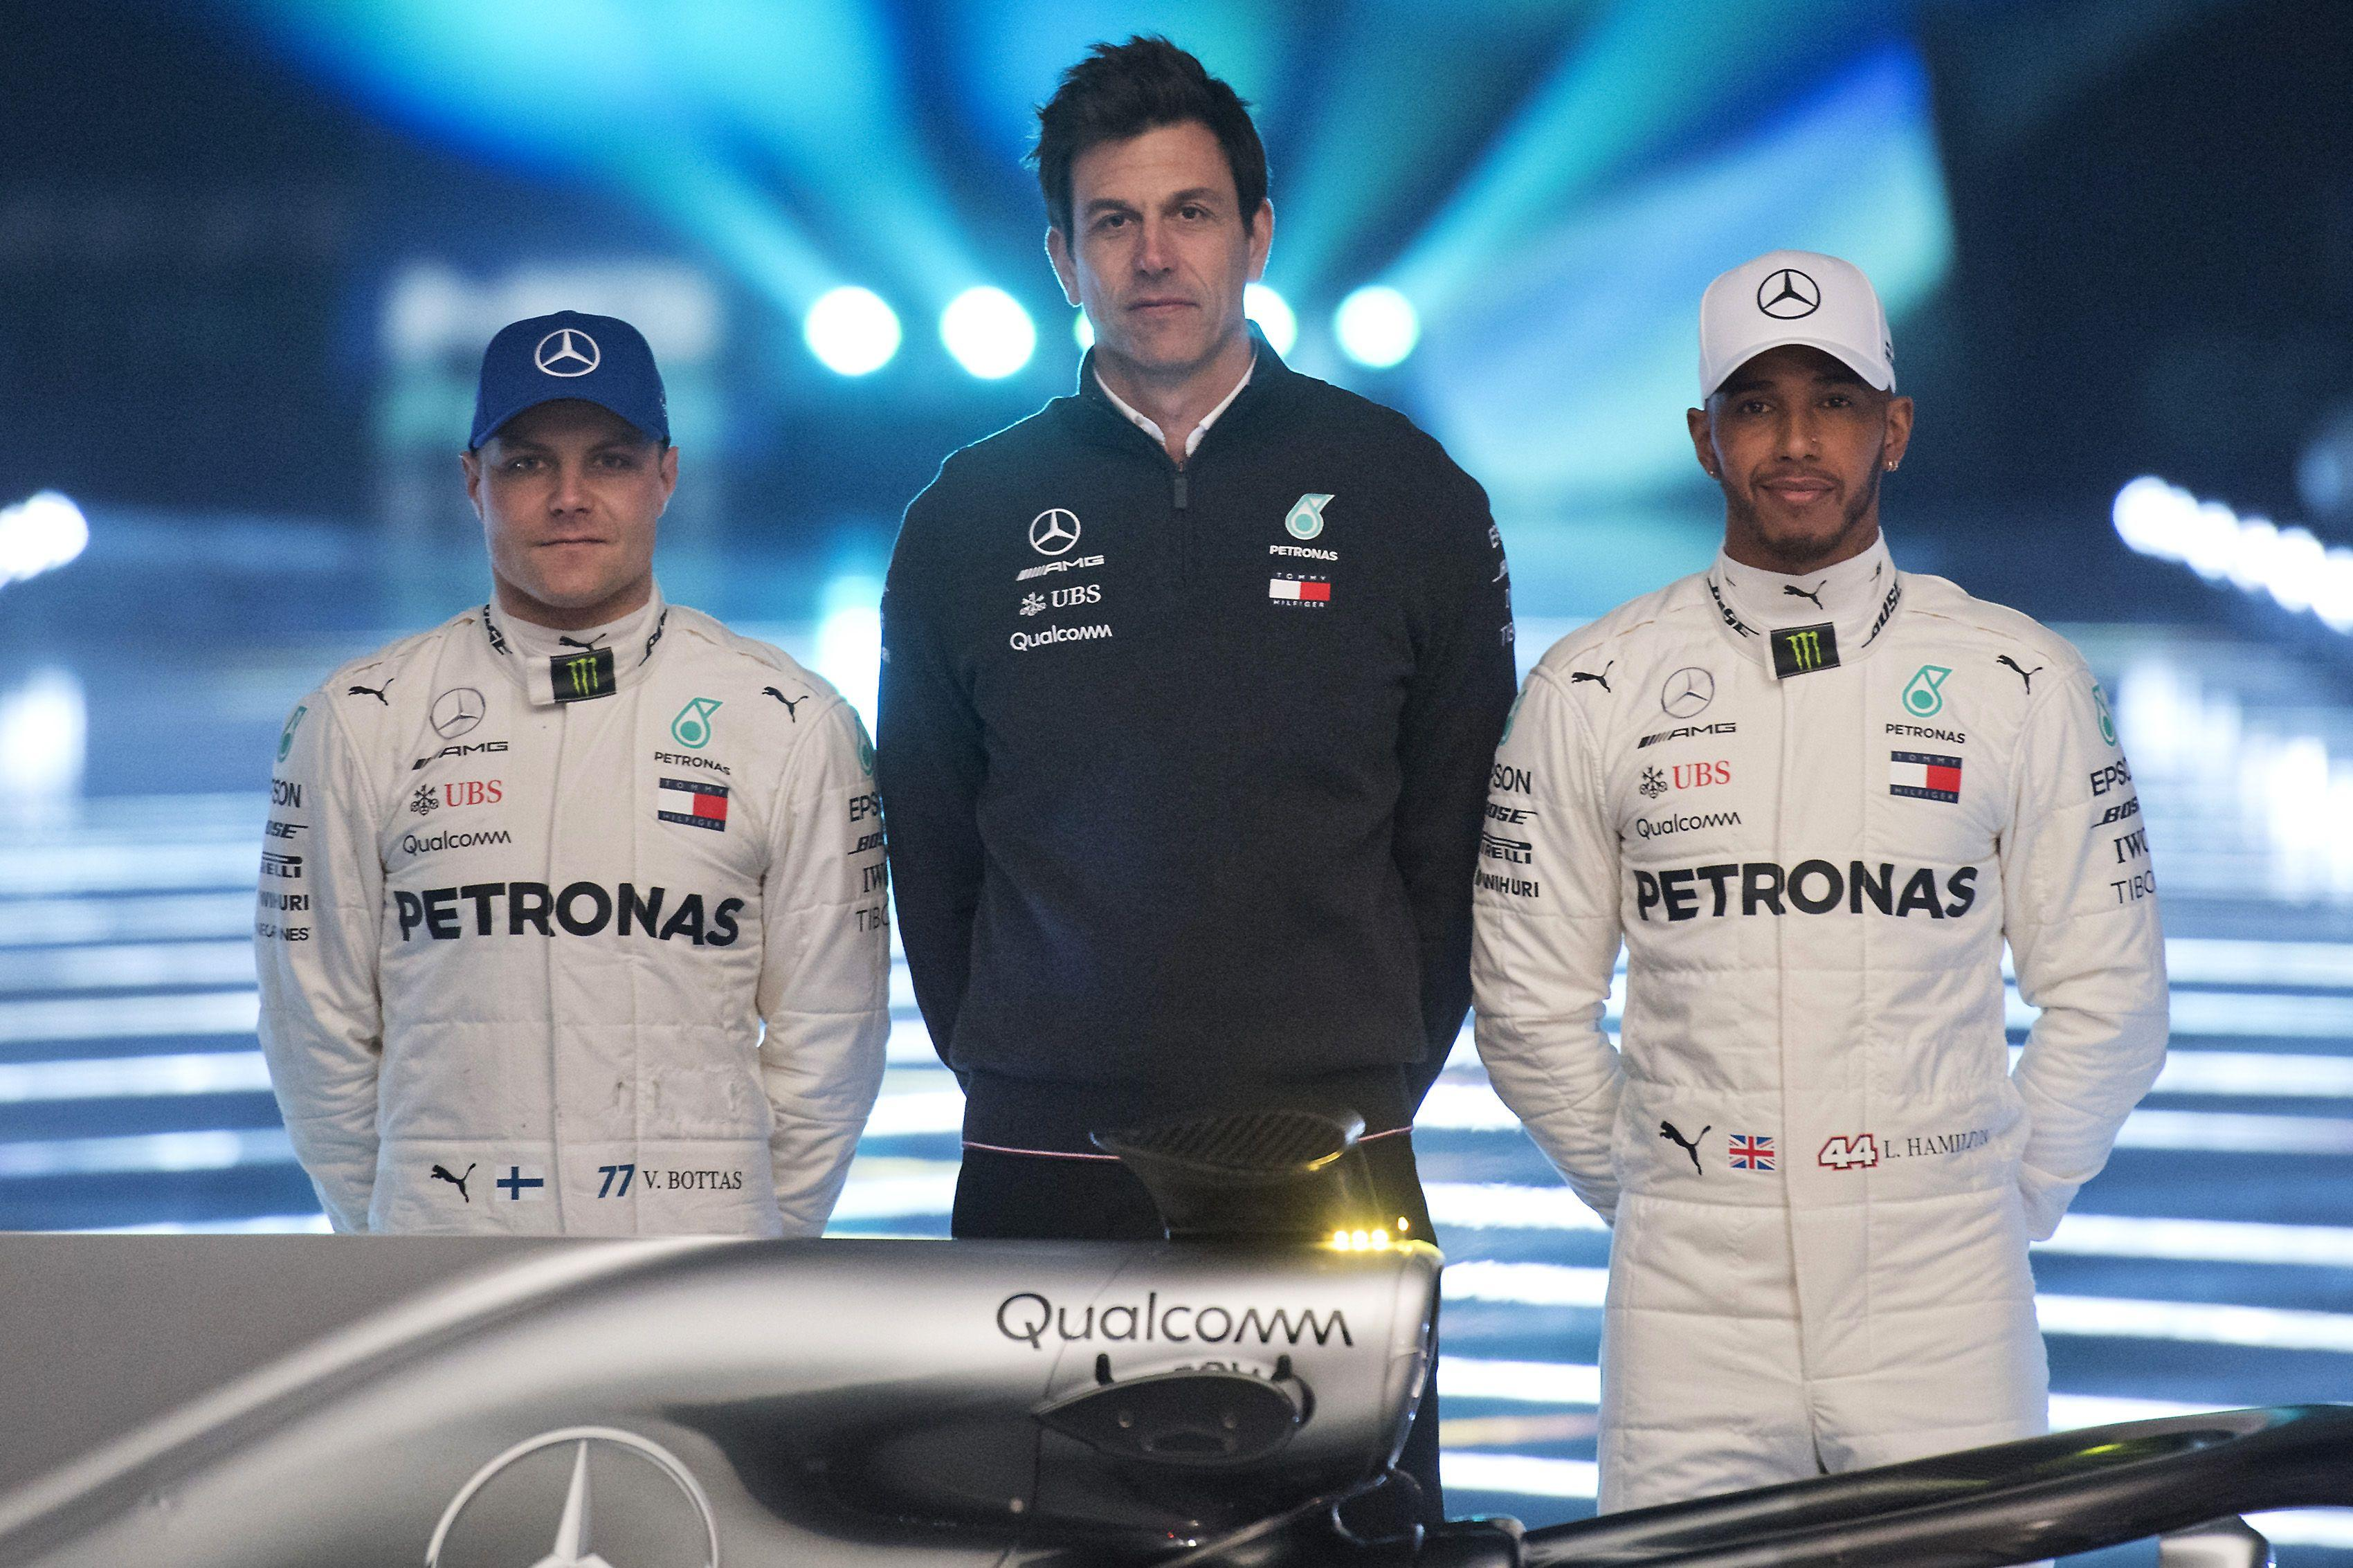 Lewis Hamilton and Valtteri Bottas have been teamed together for a second season at Mercedes